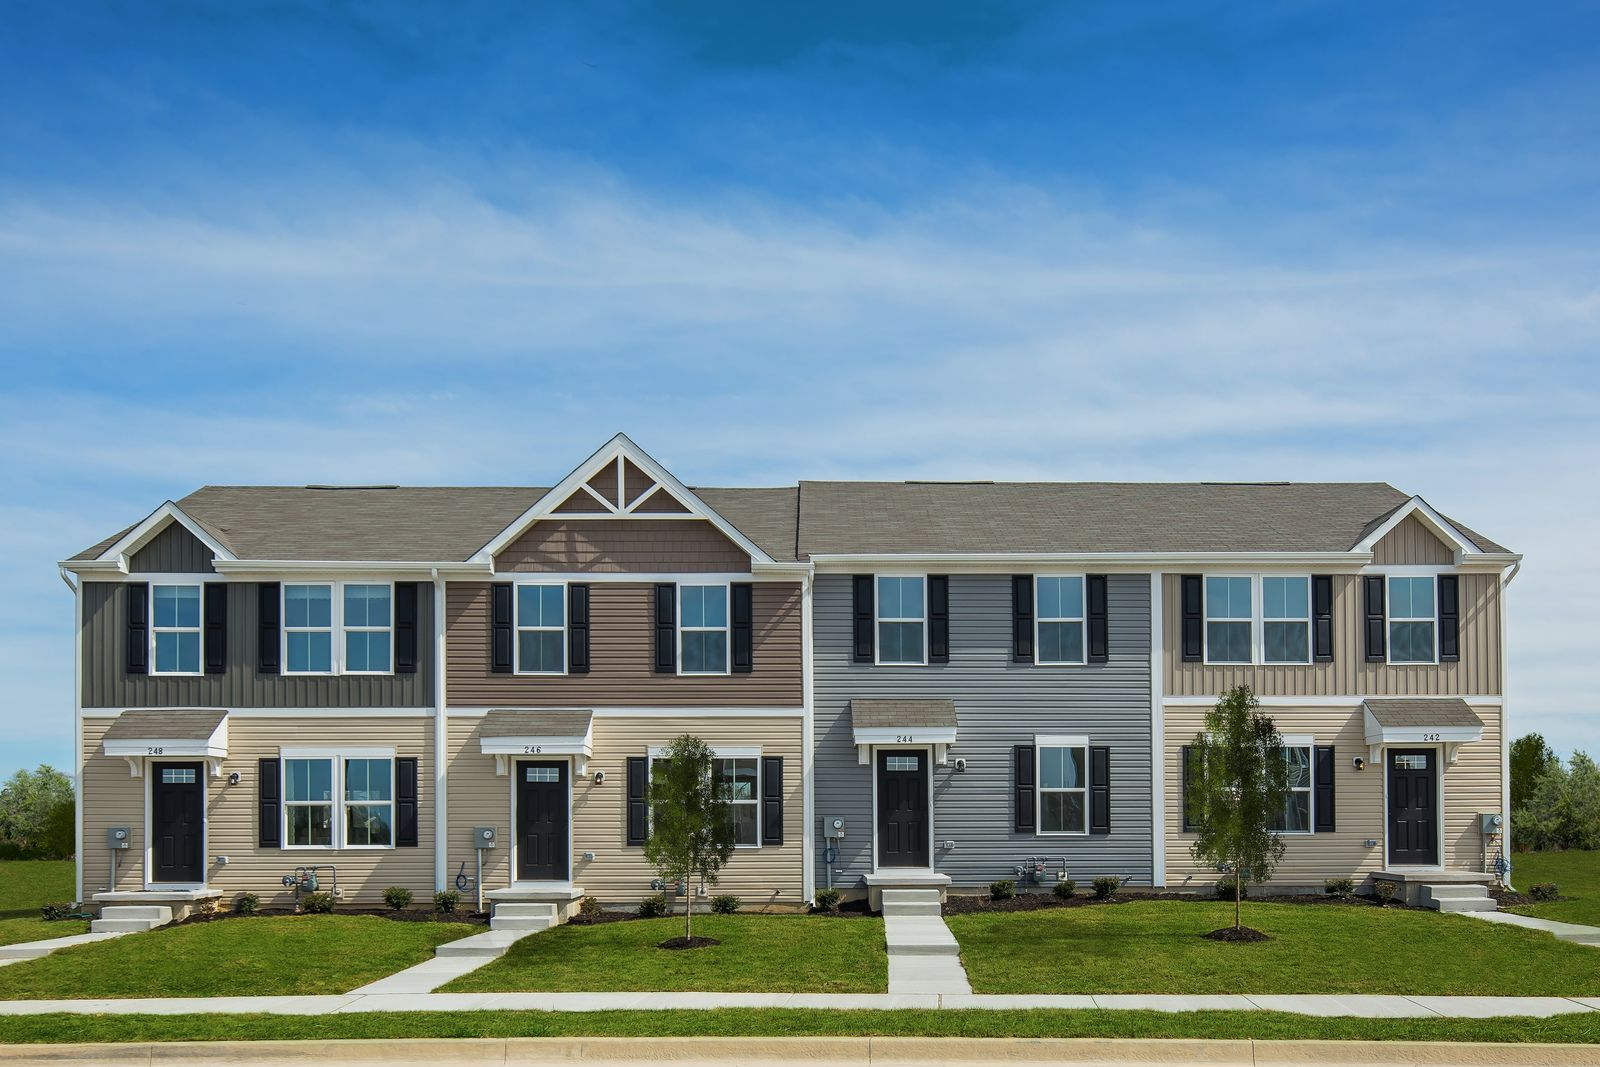 THORNTON GROVE TOWNHOMES - COMING SPRING 2021:Finally own for the same or less than what you're paying in rent! Brand new, low-maintenance townhomes only 8 miles to downtown Nashville from themid $200s.Join the VIP list today!